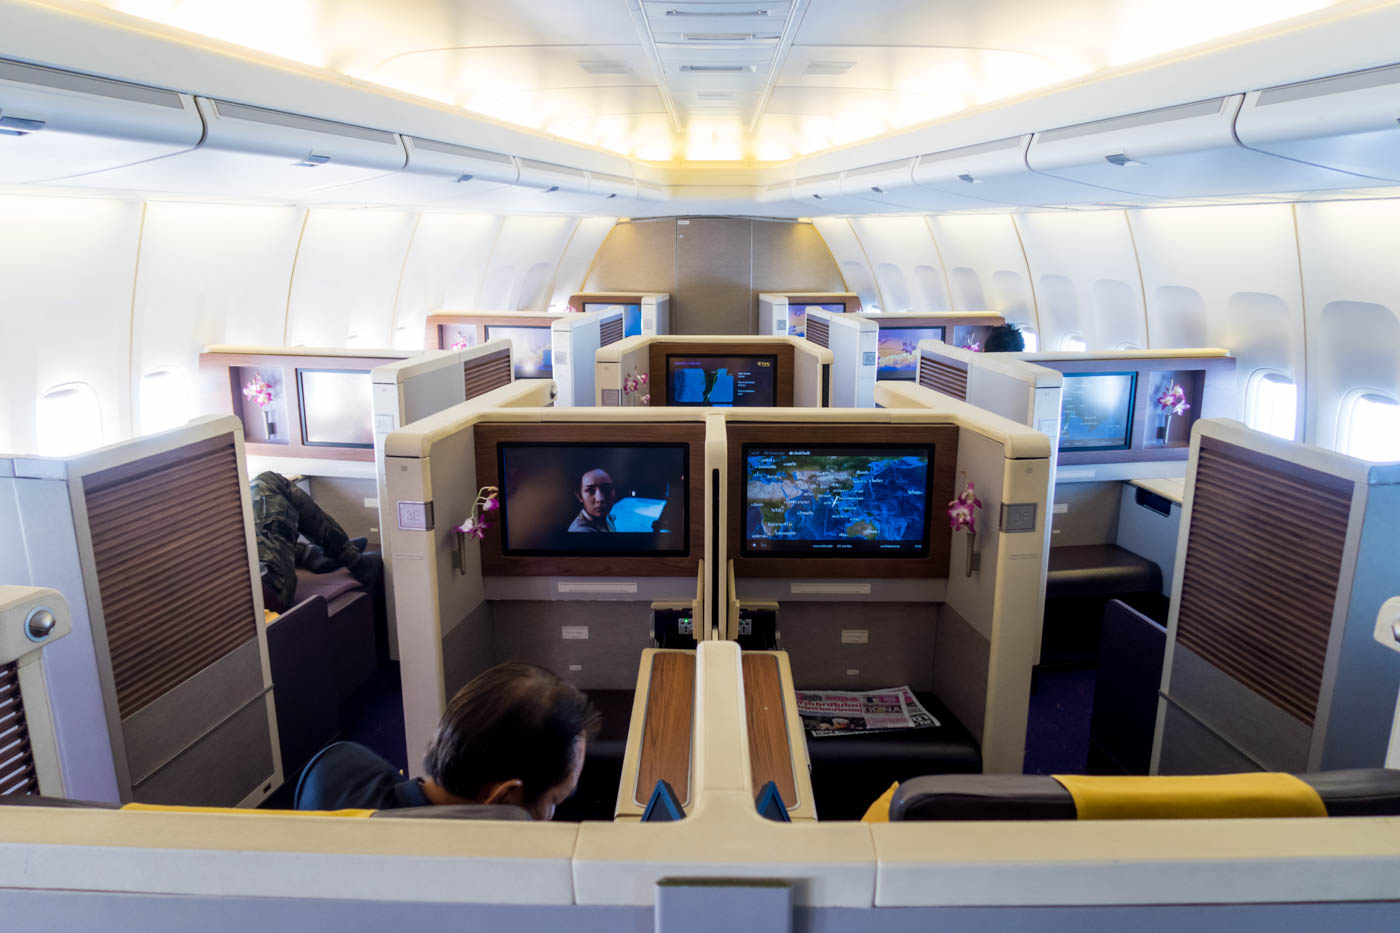 Thai Airways Boeing 747-400 First Class Cabin